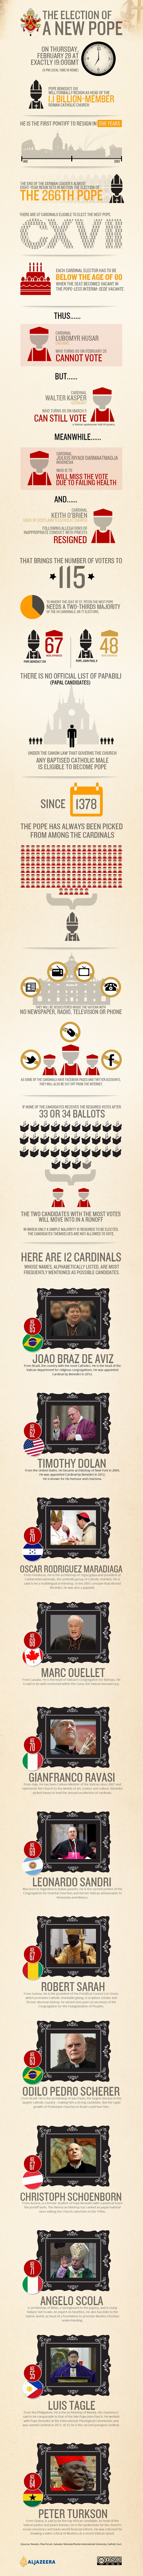 Picking new Pope from 'Papabili'